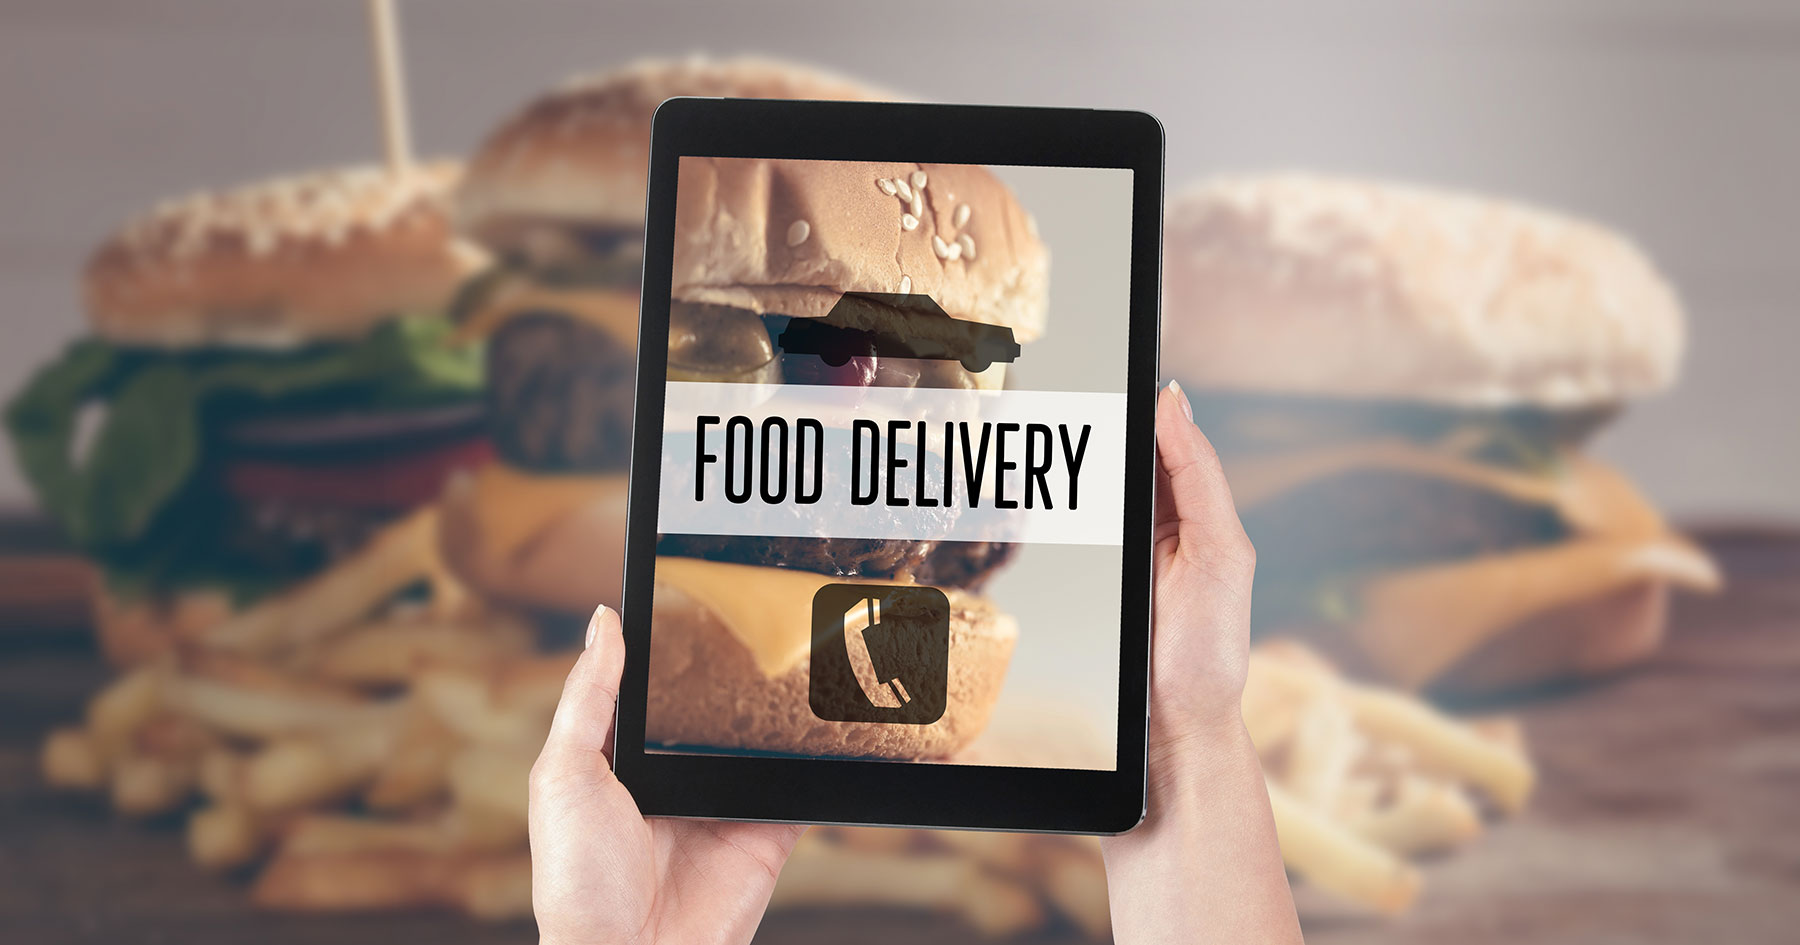 Should Your Restaurant Use A Delivery Service